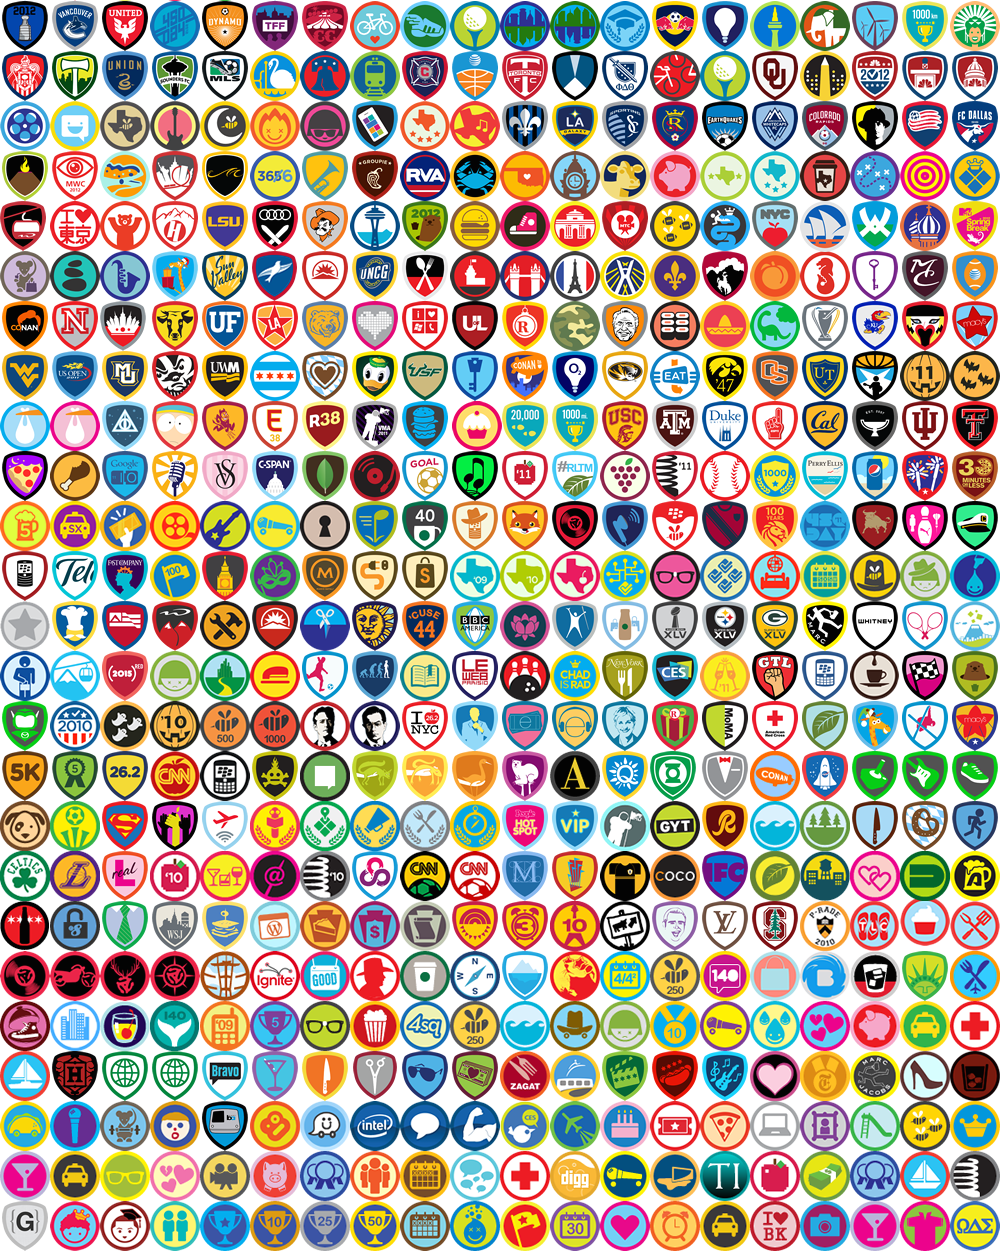 foursquare badges.png